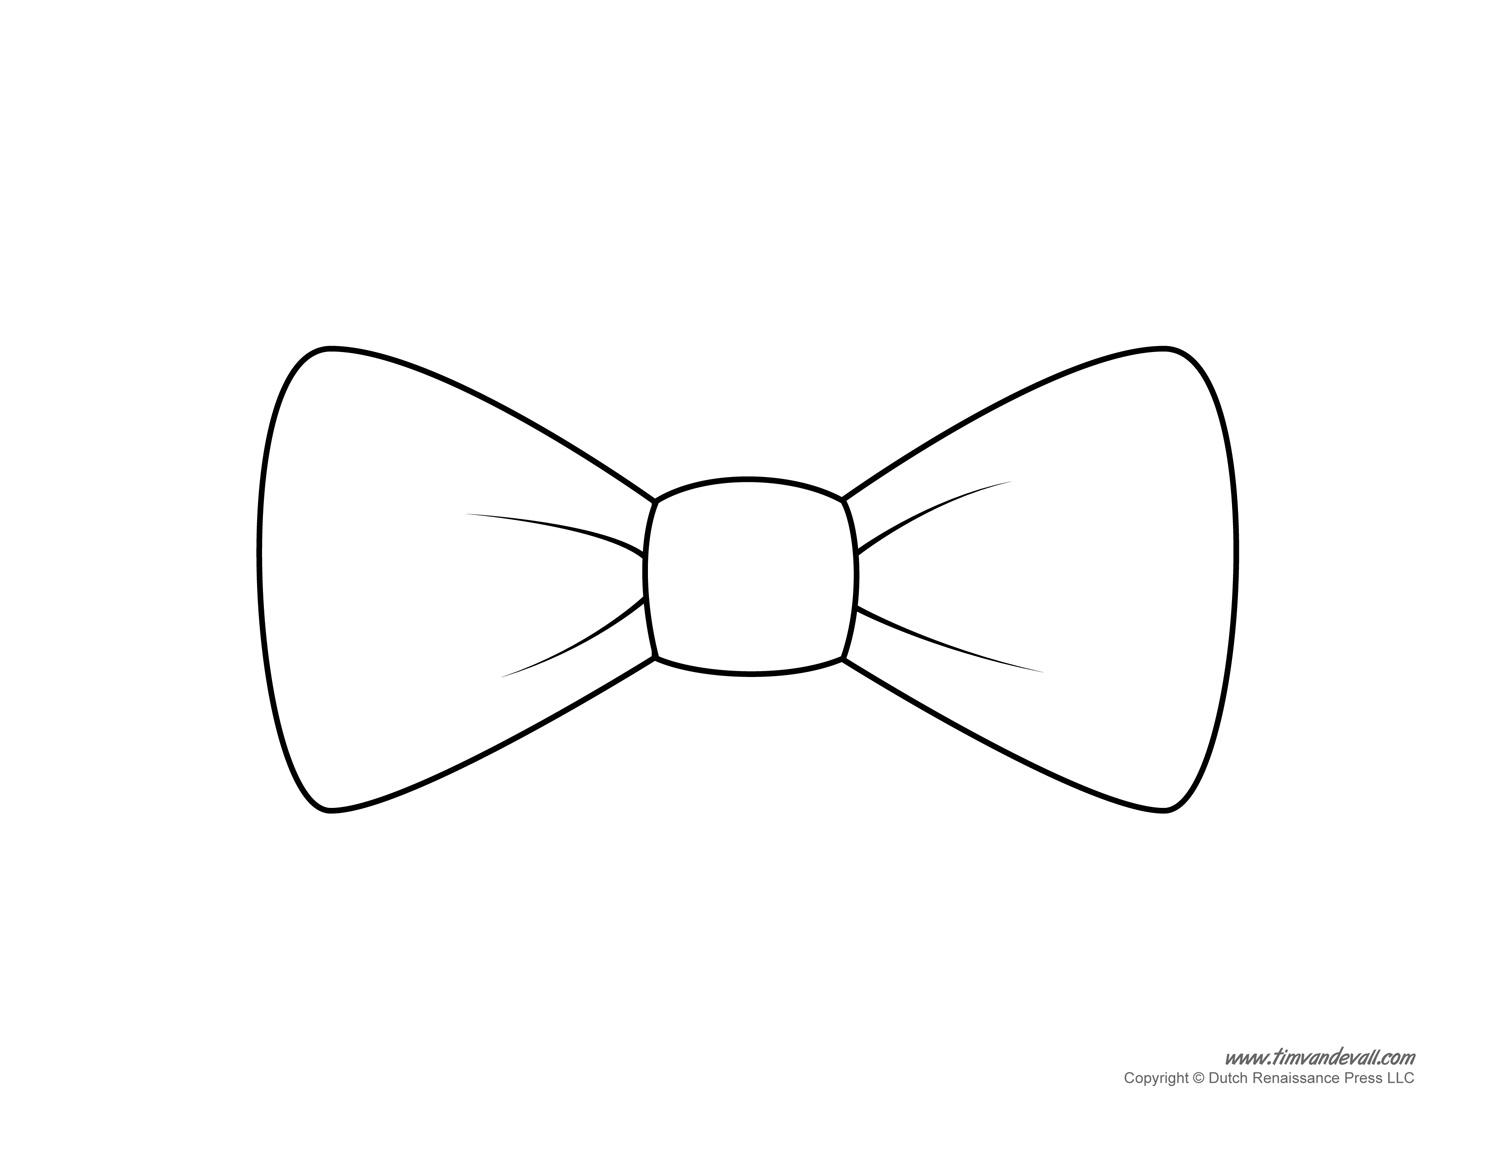 Drawn bow tie Tie Printables Template on Clip